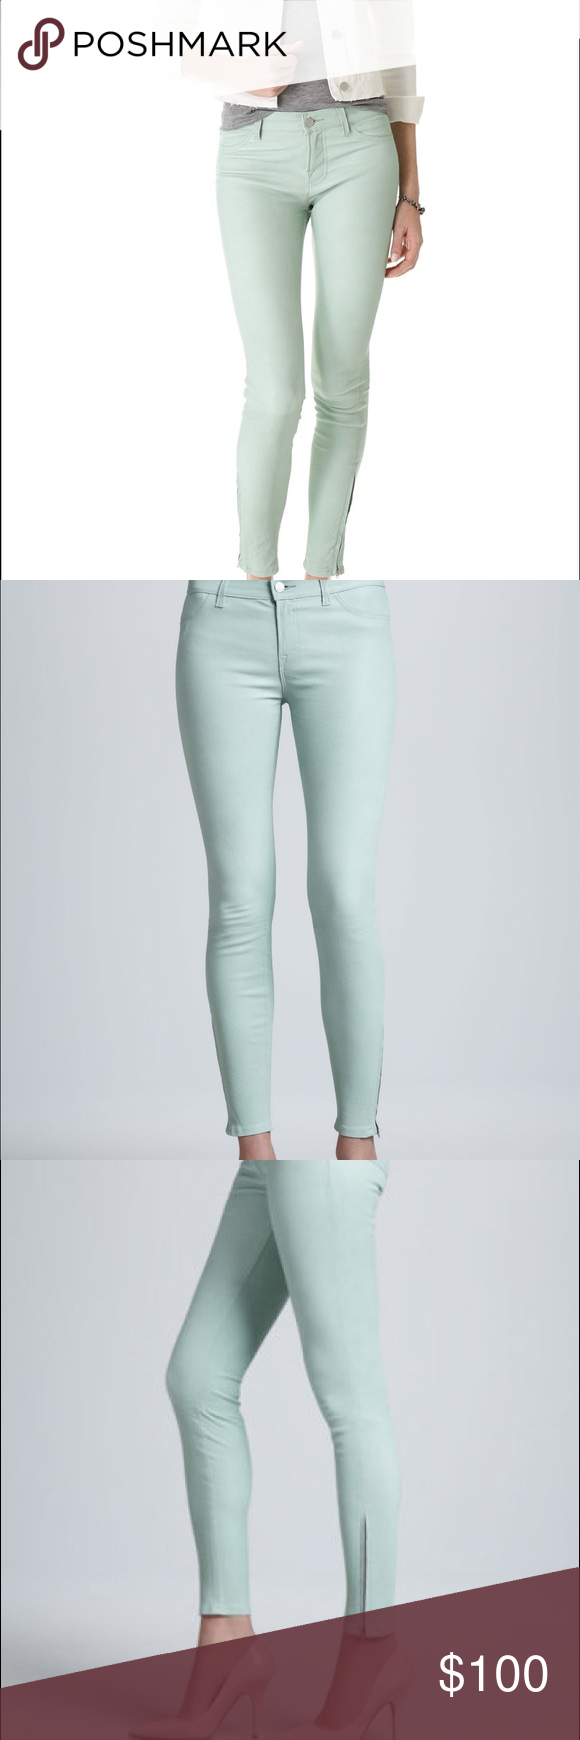 J BRAND mint lamb leather super skinny pants Refined luxury couture by J Brand, these exquisite leather pants and pastel mint hue are the it item! The sleek leather, the slim silhouette, the sexy fit, the cool ankle zipper and a comfy mid rise cut make them so special. With easy-going silk blouse and sandals for fresh luxurious look. 100% French lamb leather. True to size. Professional leather cleaning. Slim fit. Ankle zipper. J Brand Pants Skinny